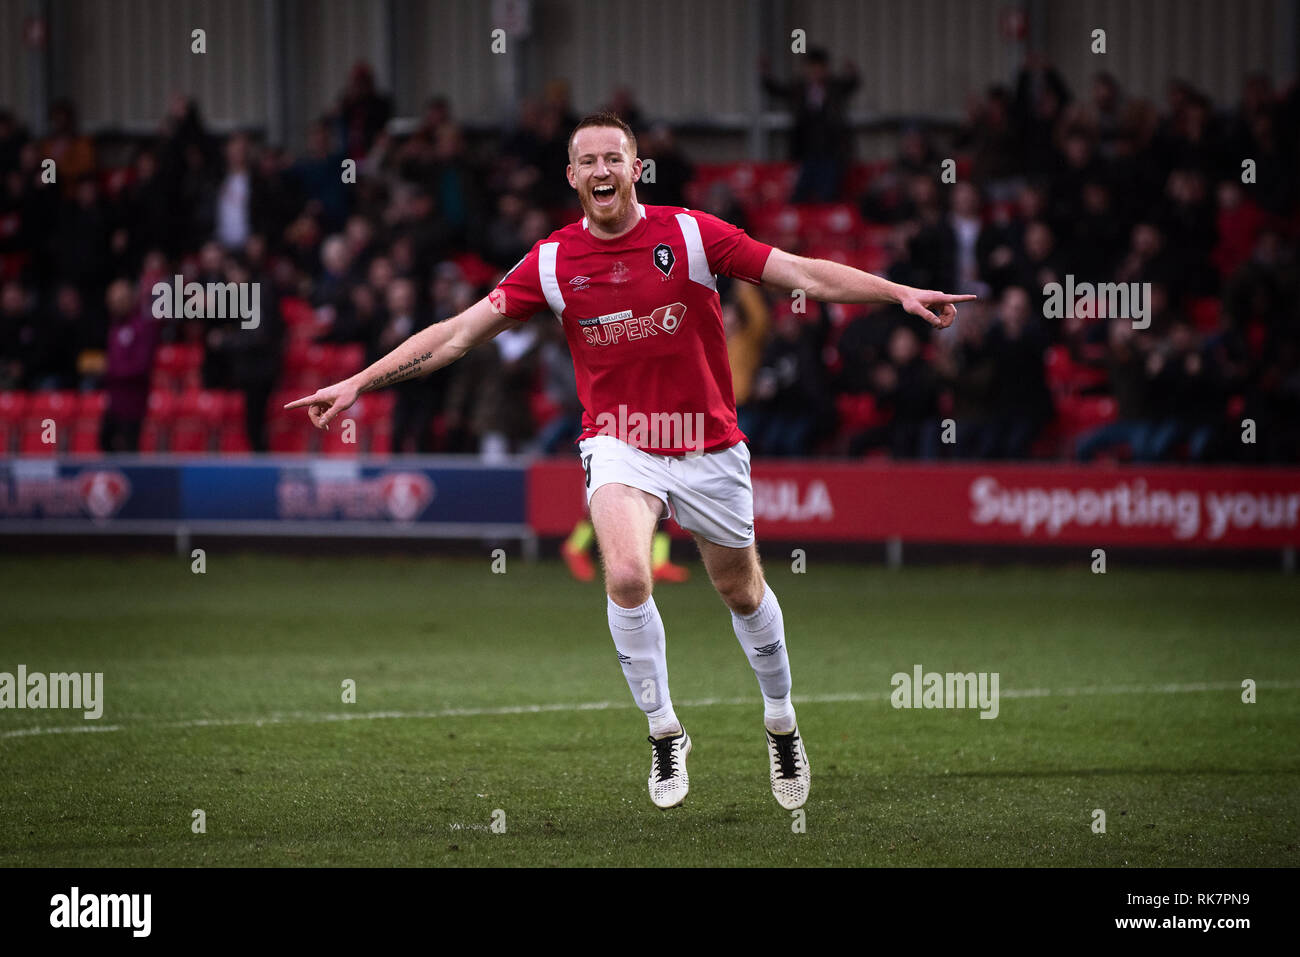 Adam Rooney. Salford City FC. - Stock Image